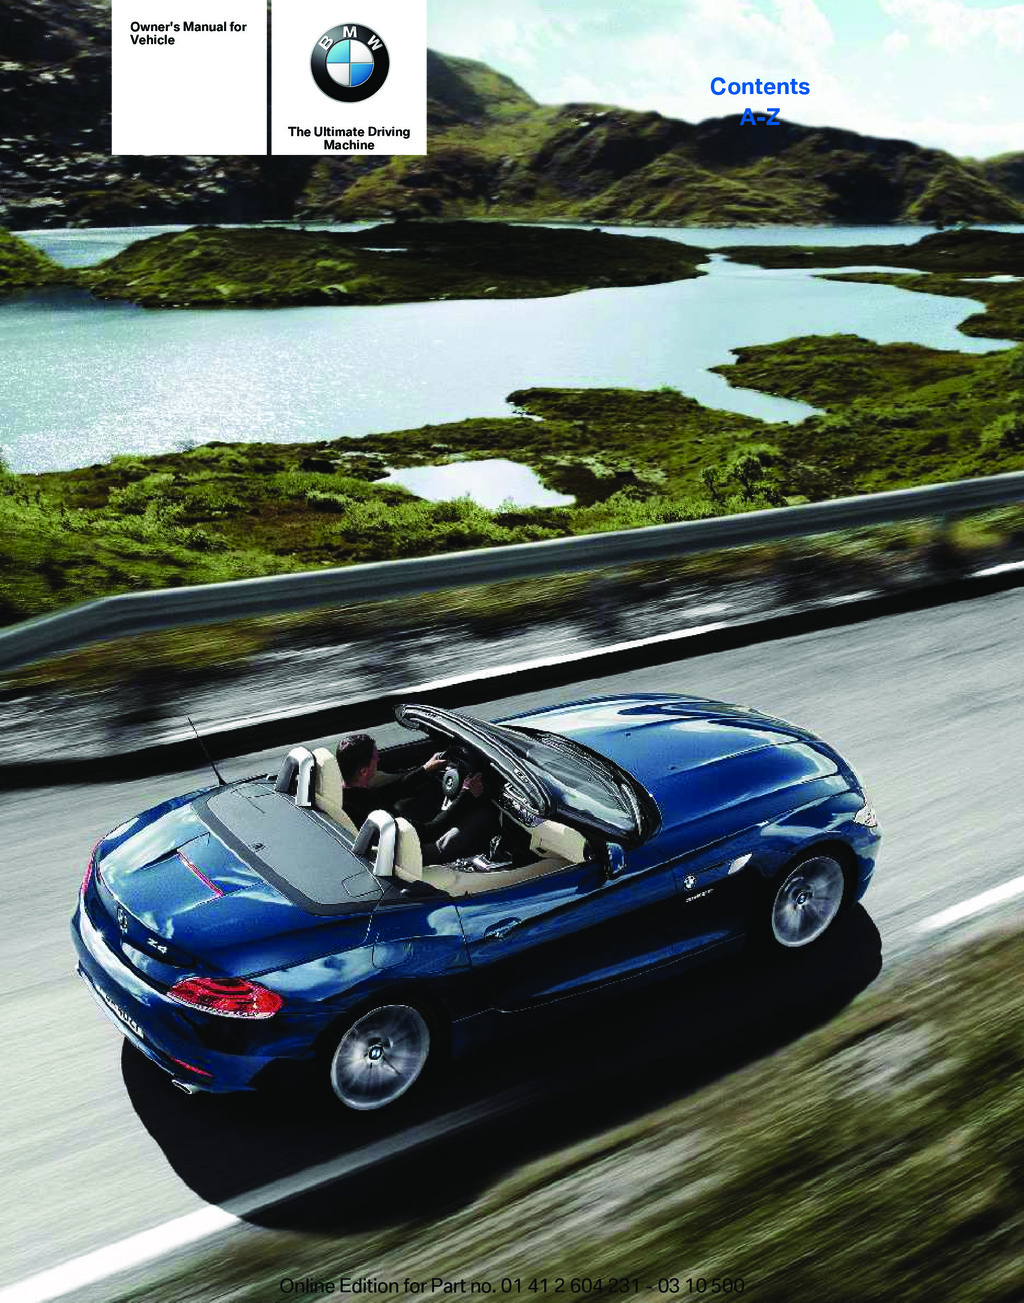 hight resolution of 2011 bmw z4 owner s manual